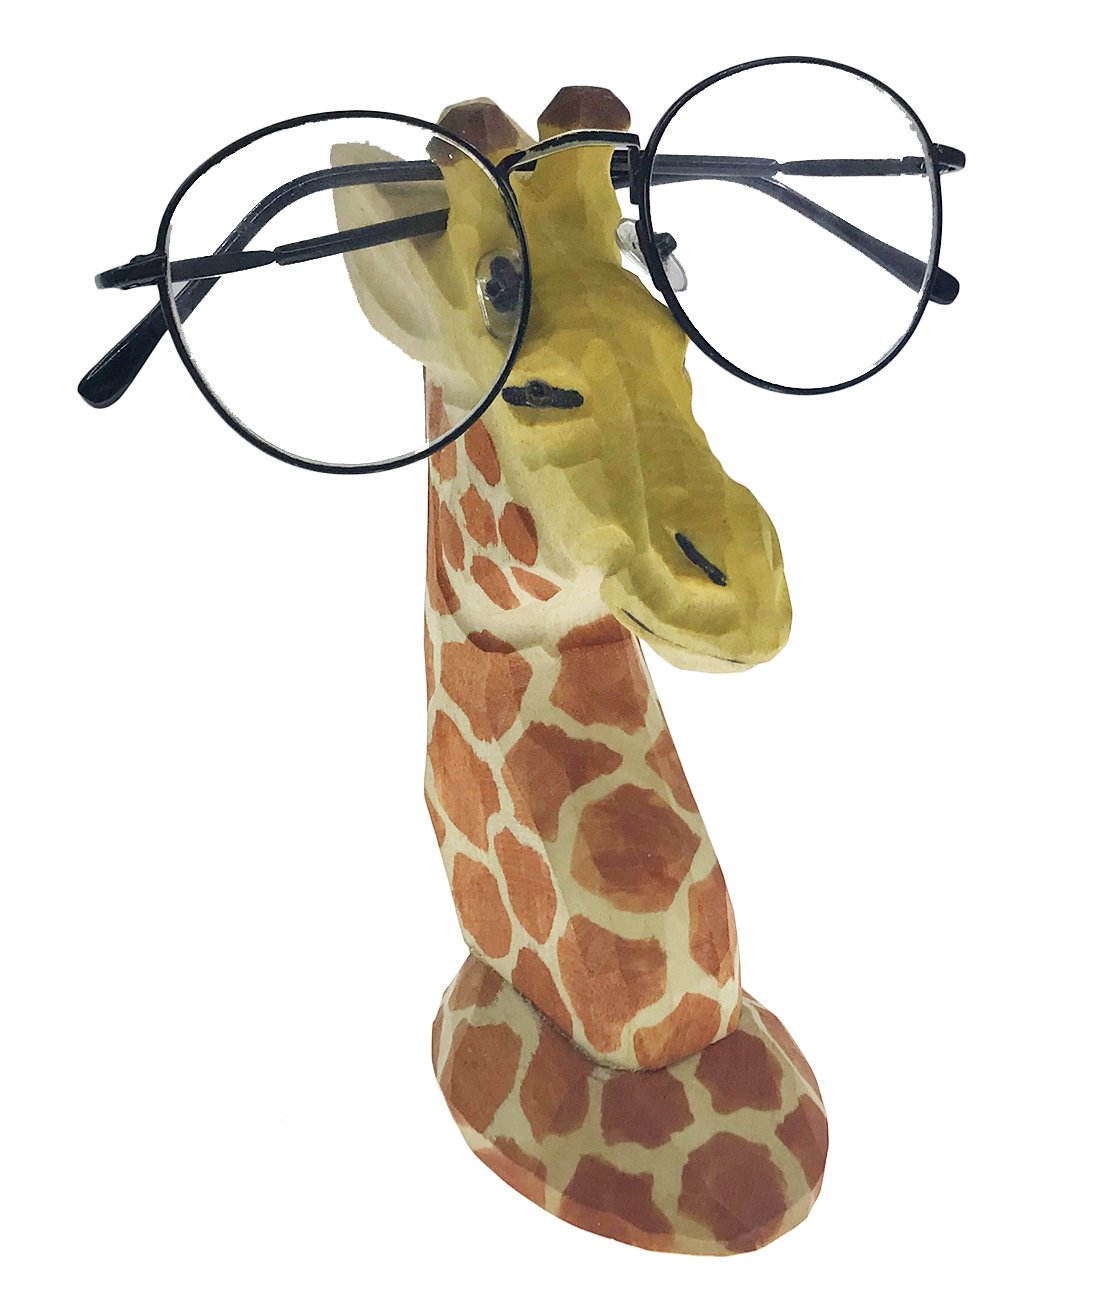 Alrsodl Vivid Natural Handmade Wood Carving Animal Eyeglass Holder Spectacle Stand For Children School Office Study Room(Giraffe)